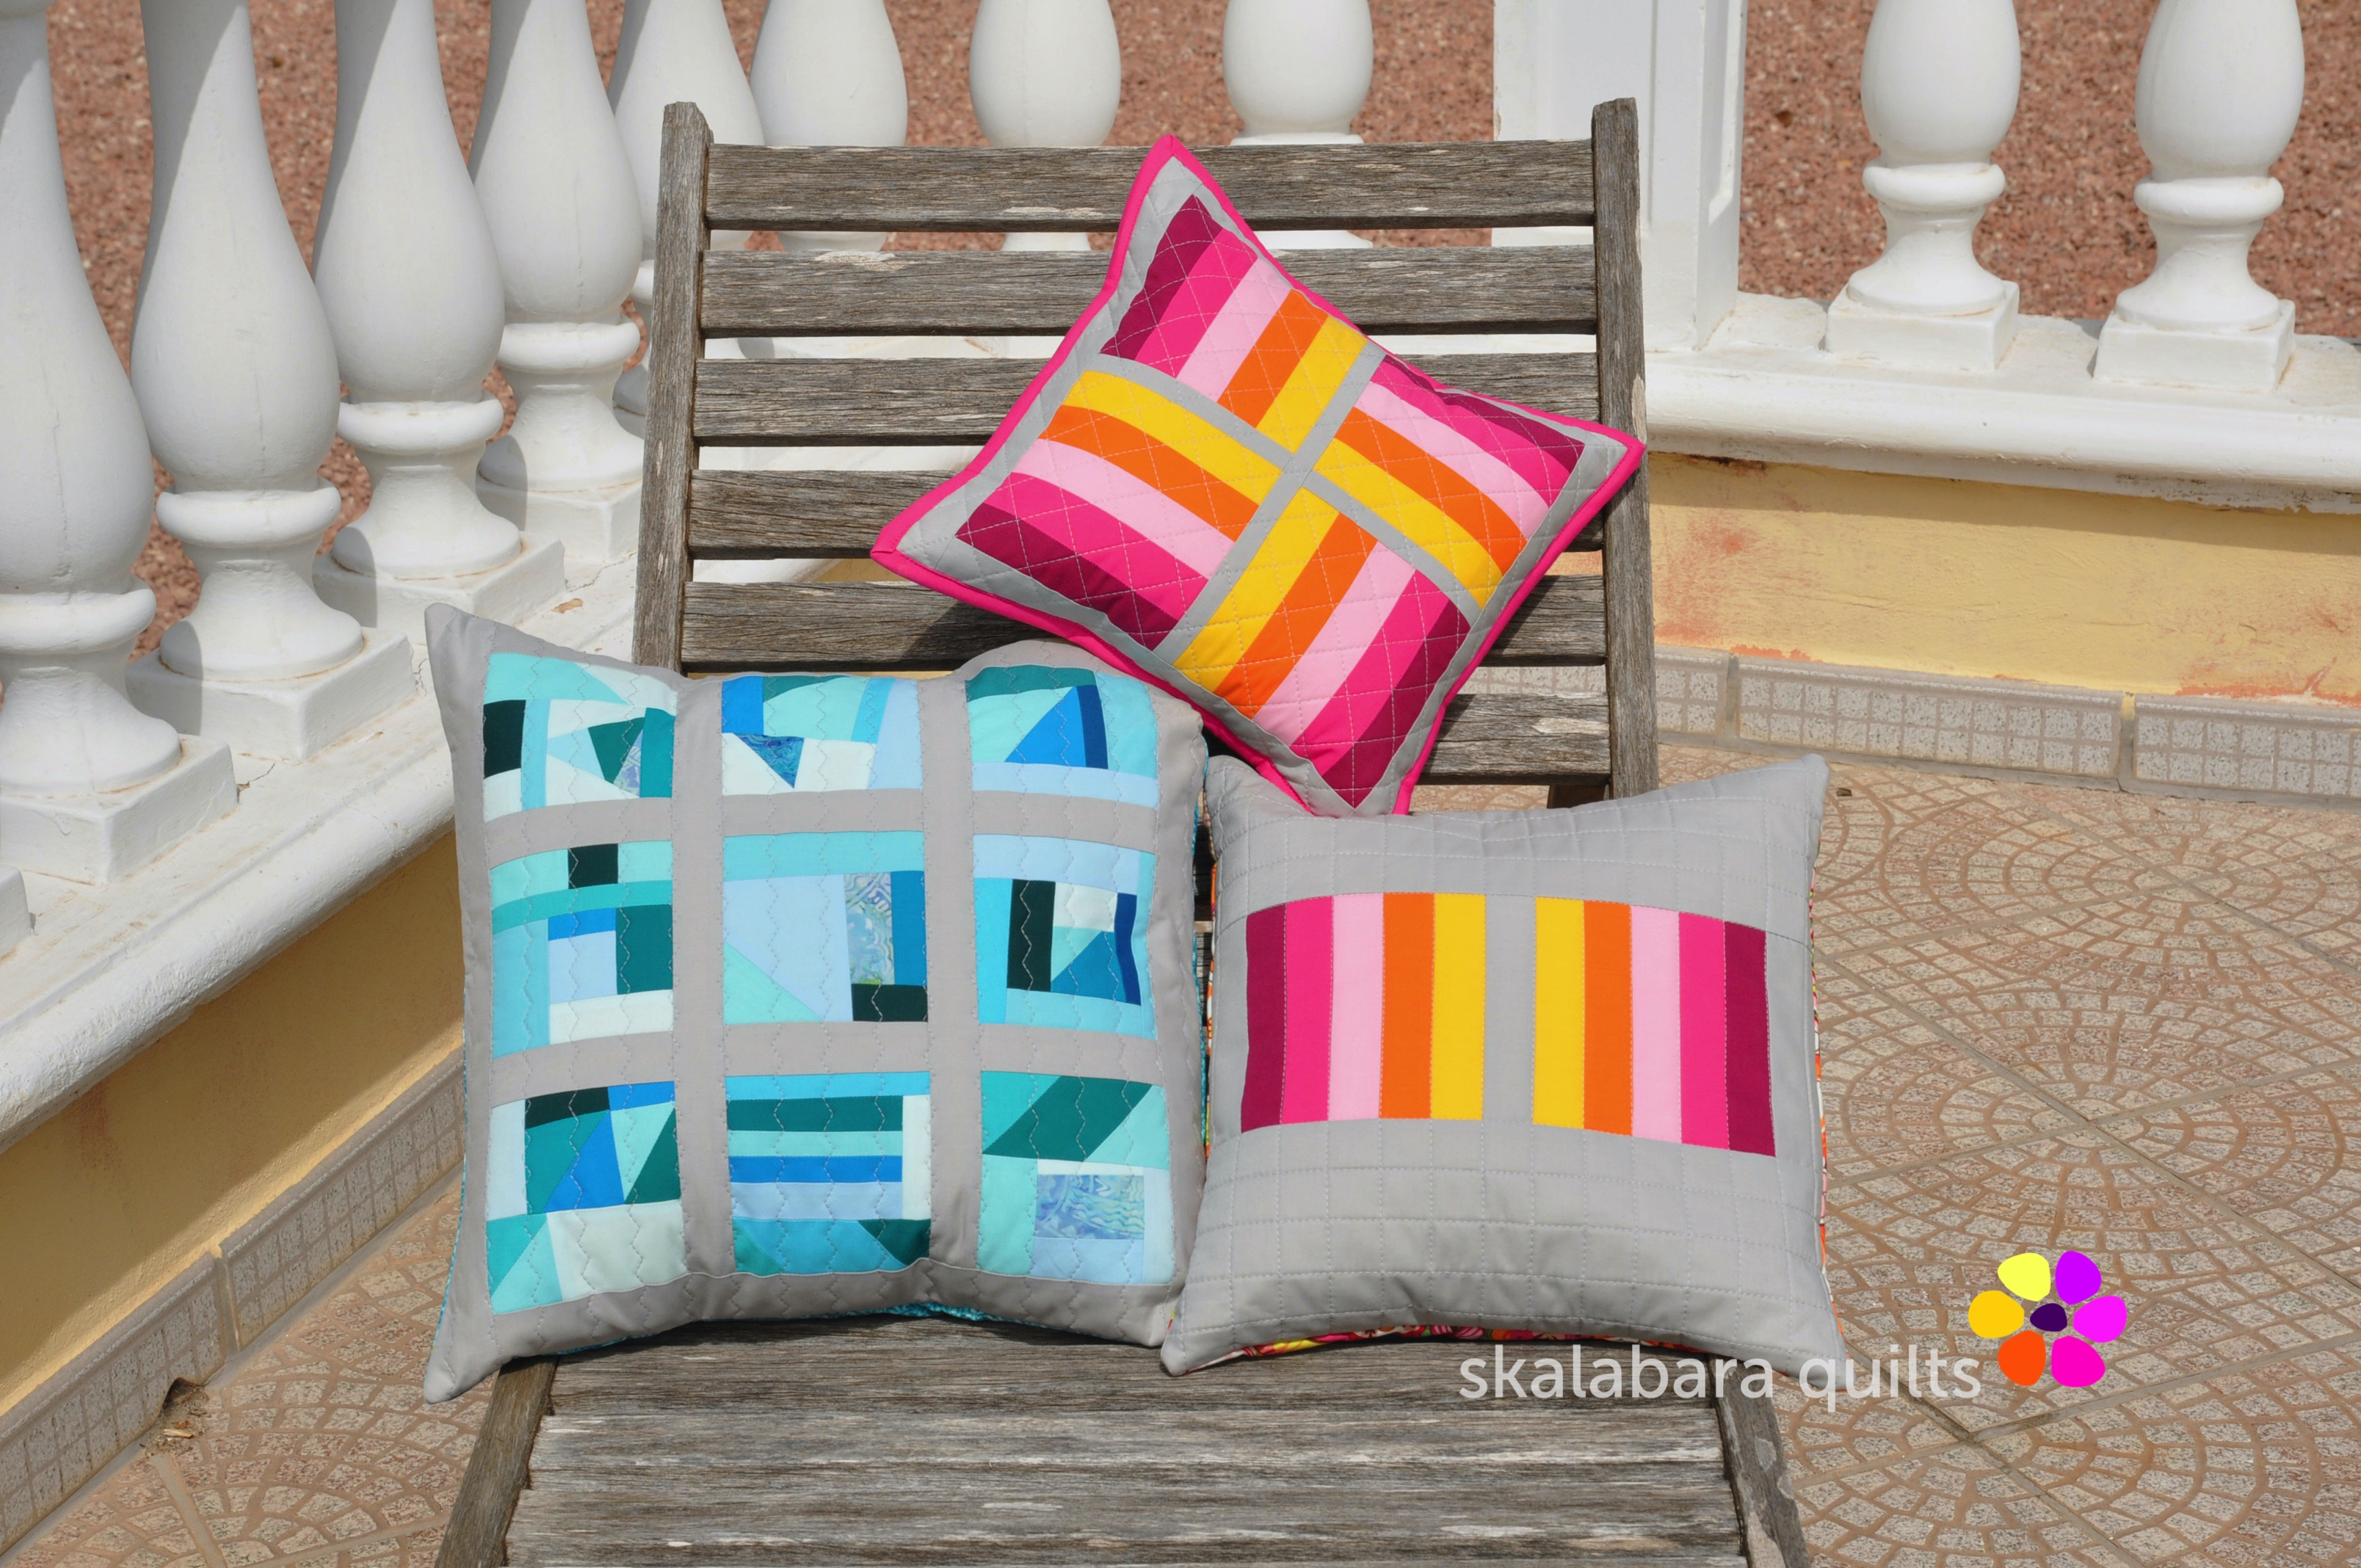 april cushions 5 - skalabara quilts